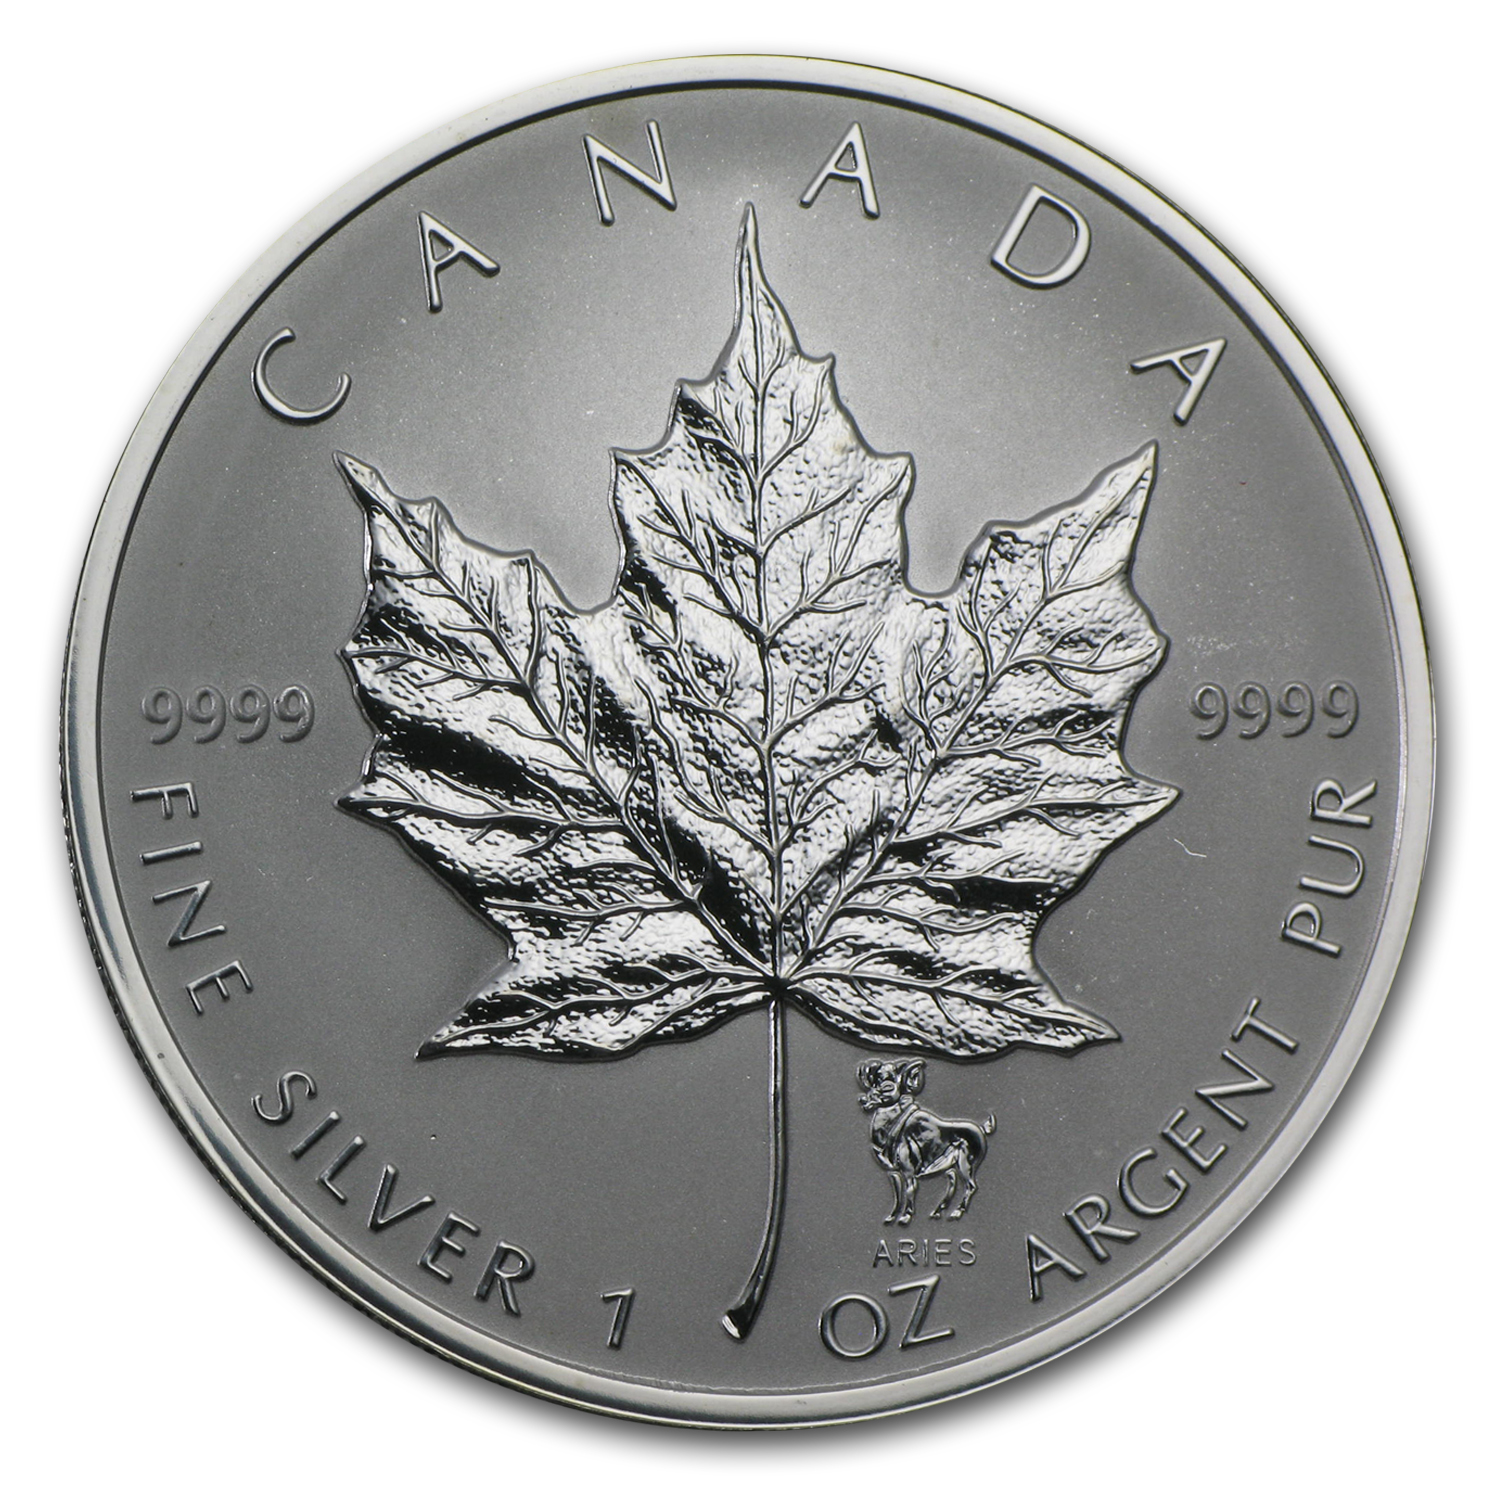 2004 Canada 1 oz Silver Maple Leaf Aries Zodiac Privy